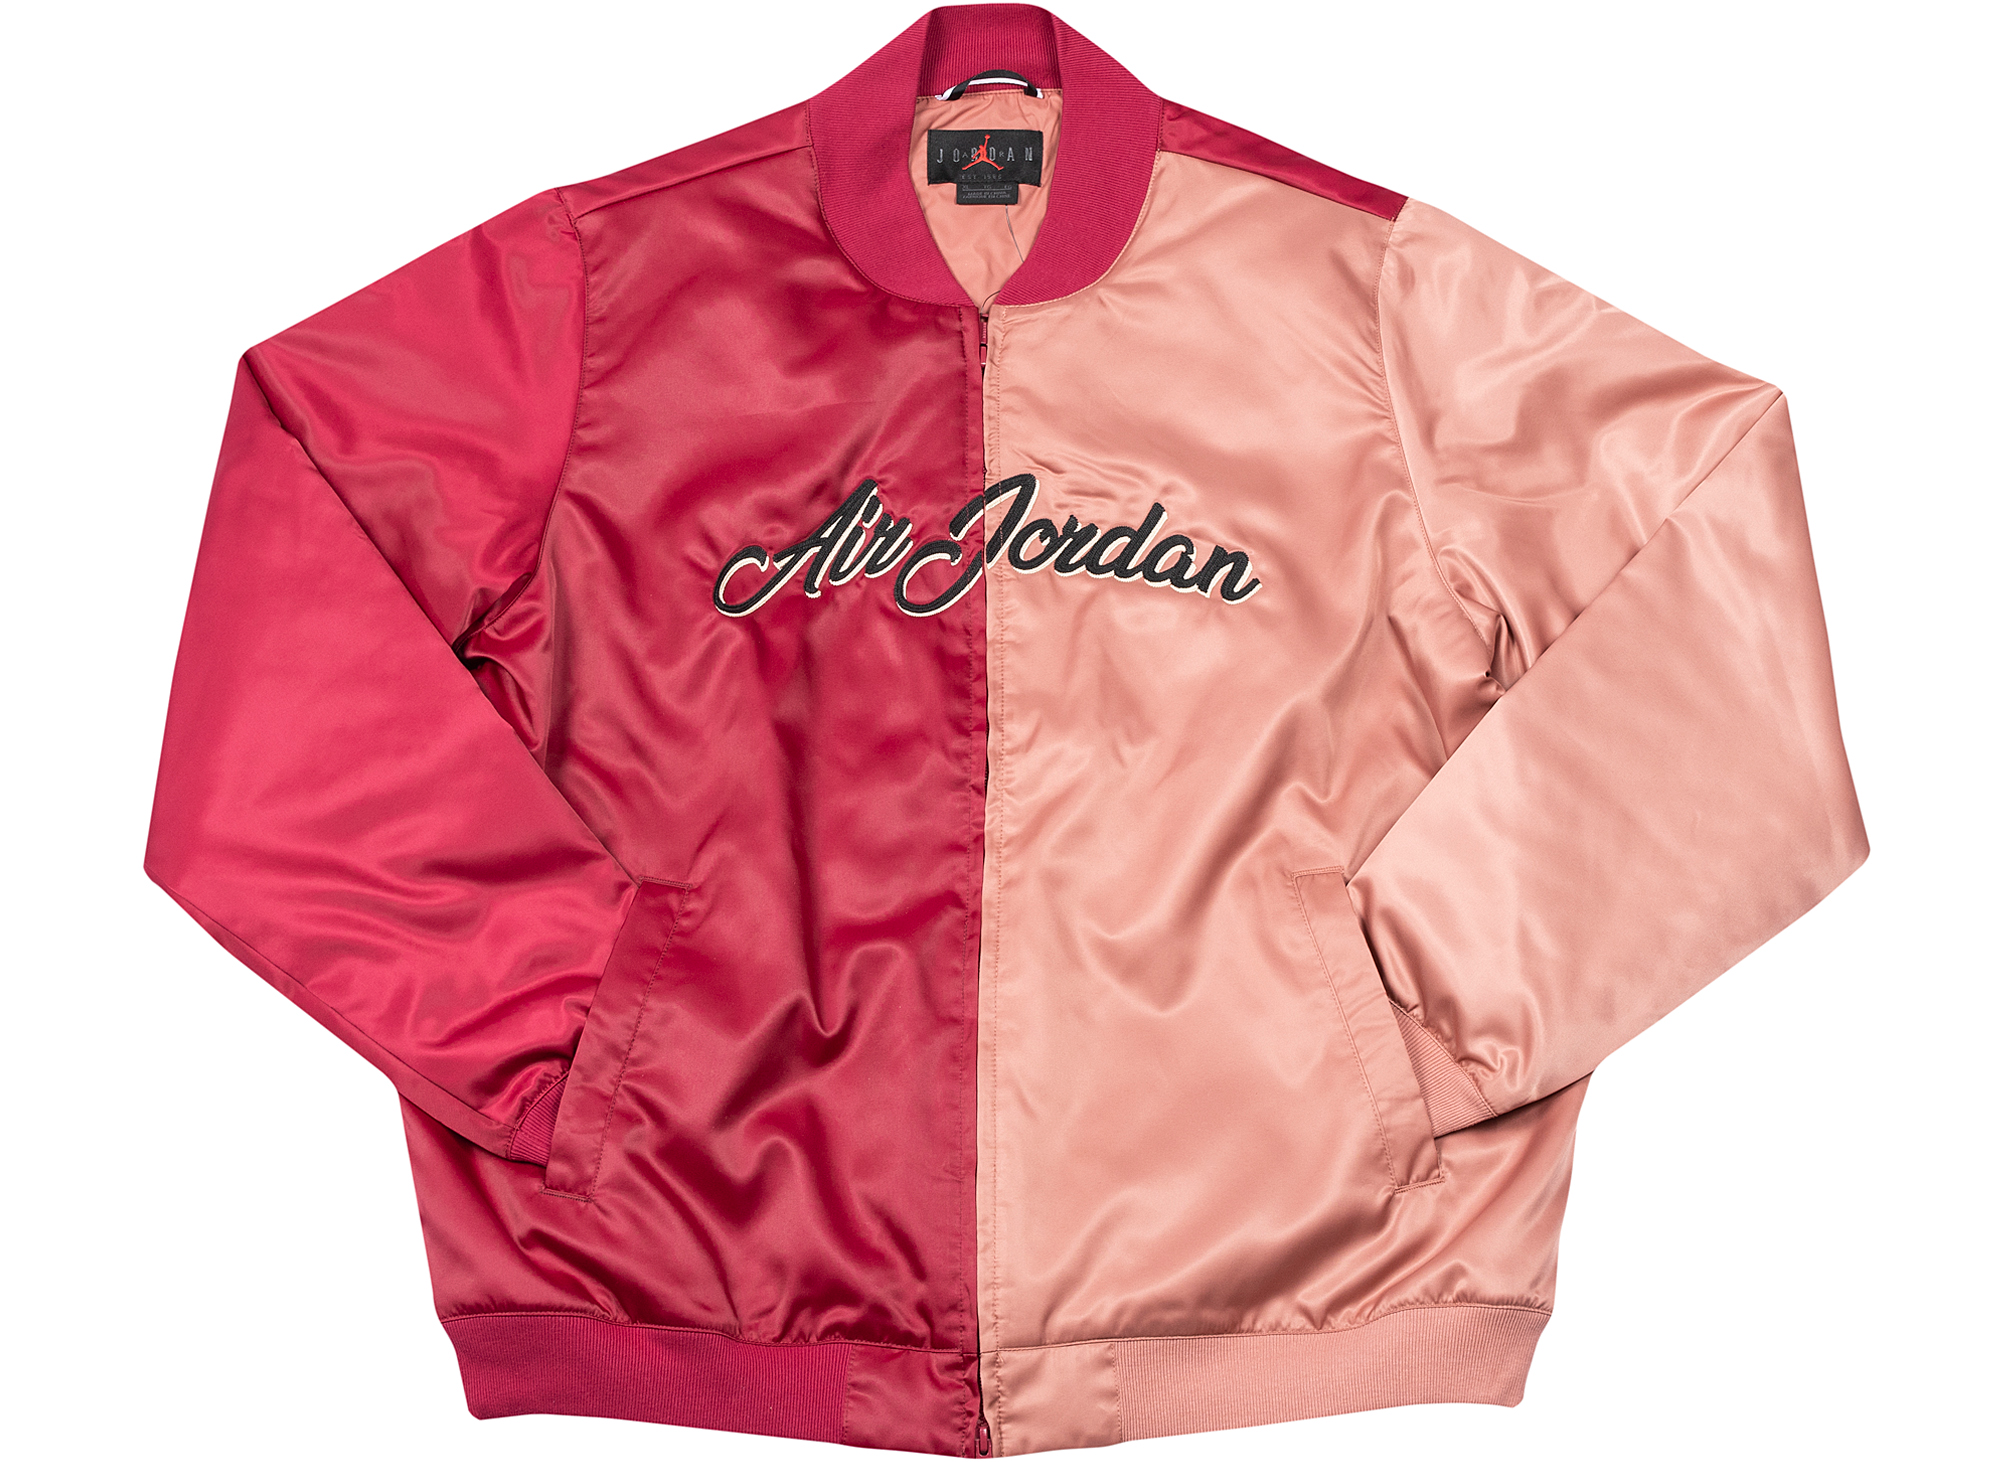 Jordan Remastered Bomber Jacket in Red